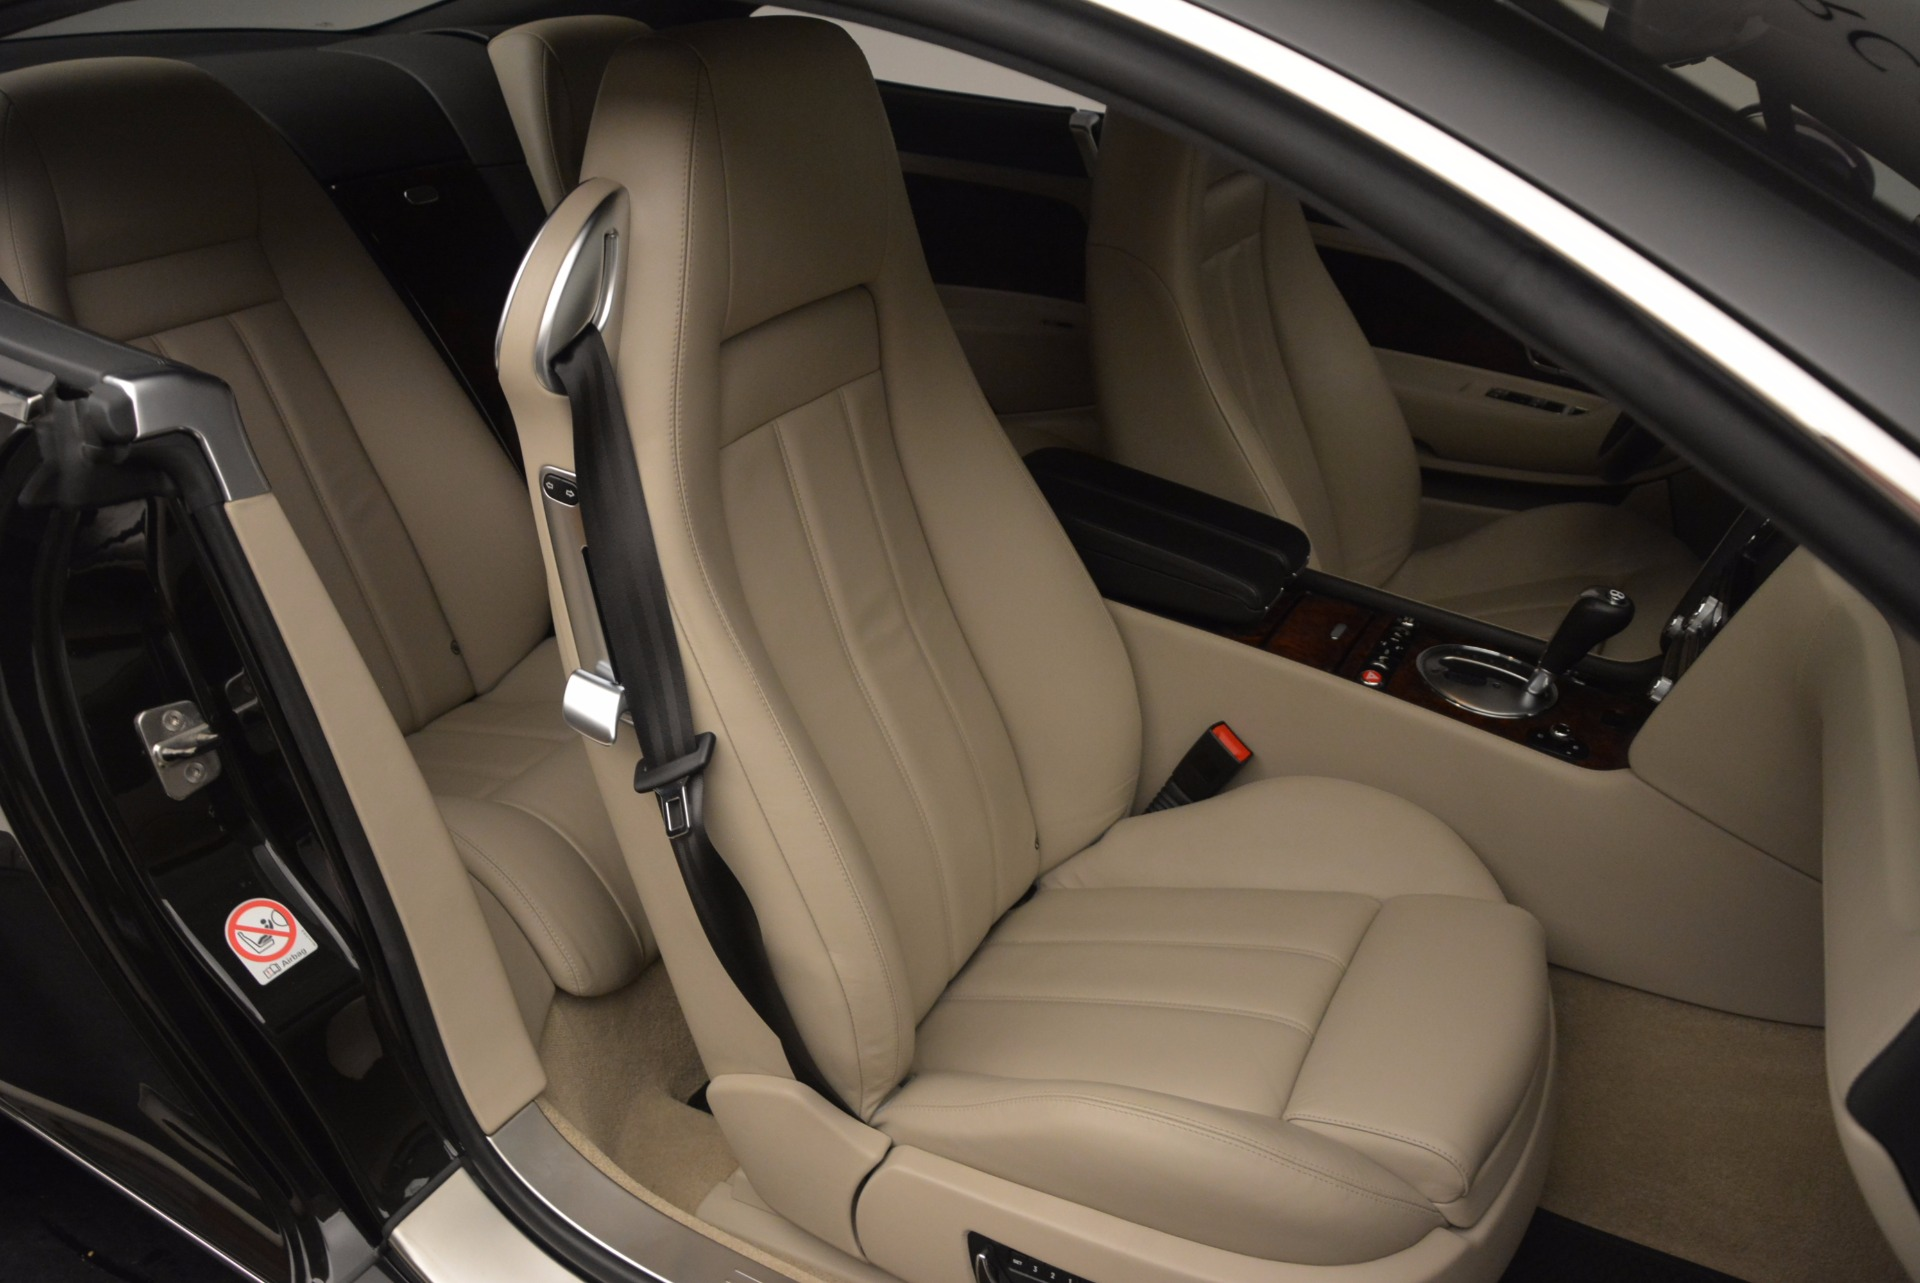 Used 2005 Bentley Continental GT W12 For Sale In Westport, CT 1677_p29